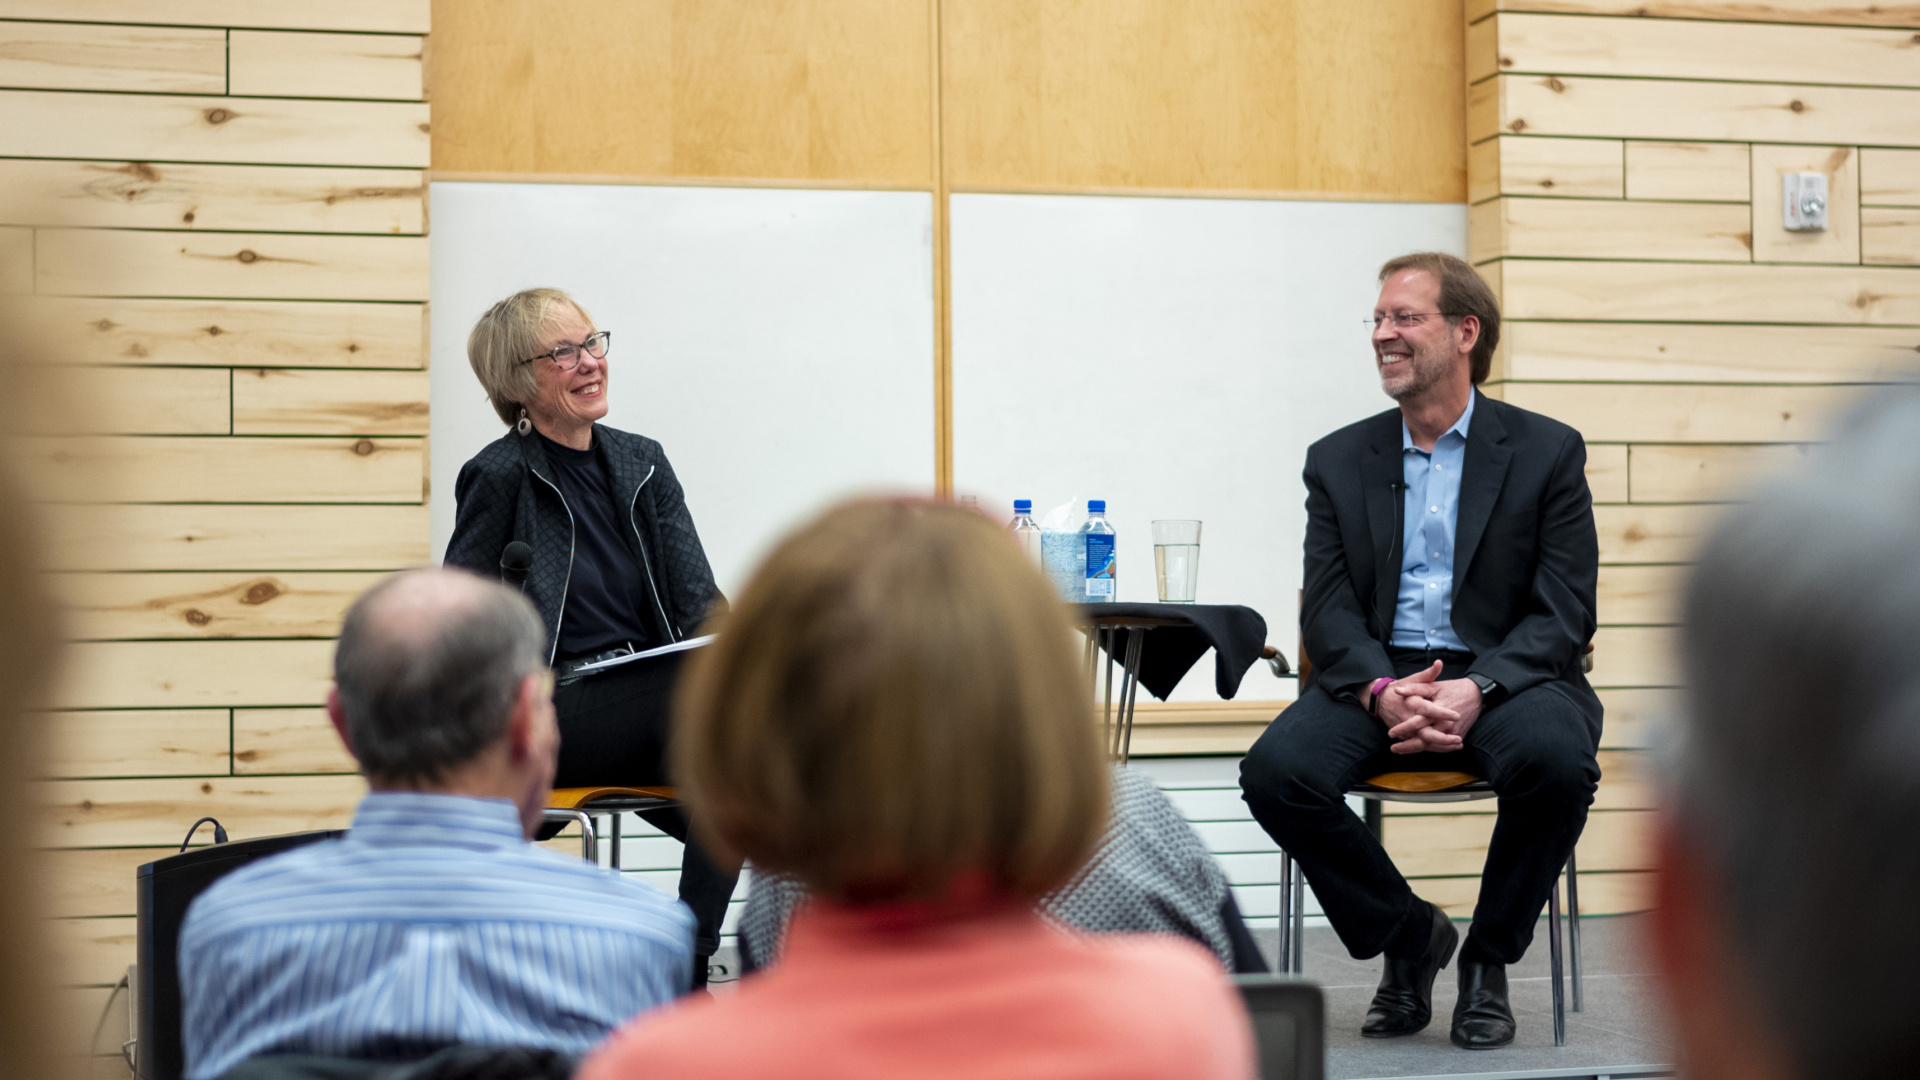 Conversation with Dan Porterfield at the Basalt Public Library